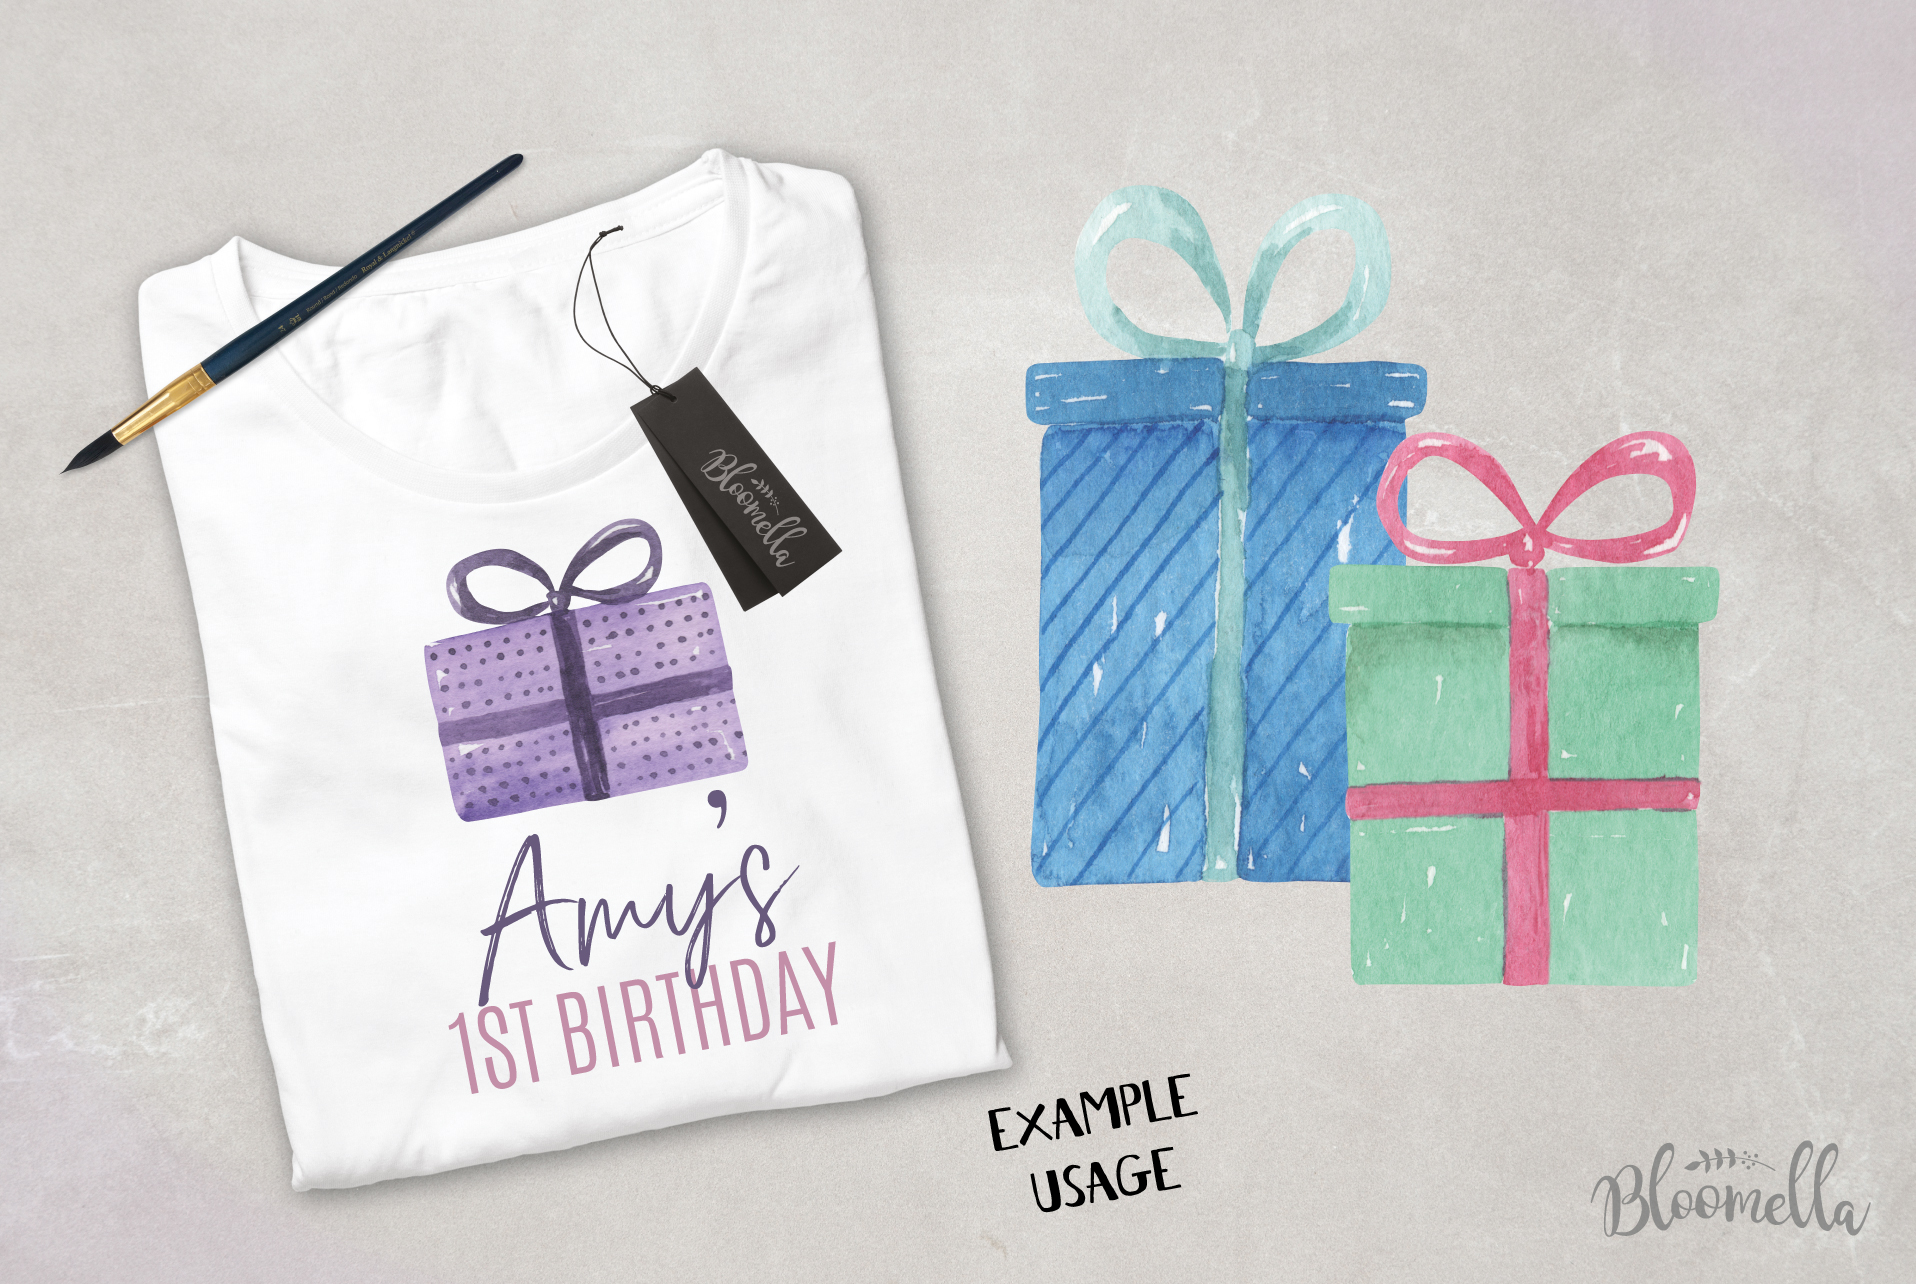 Watercolor Presents Gifts Clipart Elements Tags Banners Bows example image 5